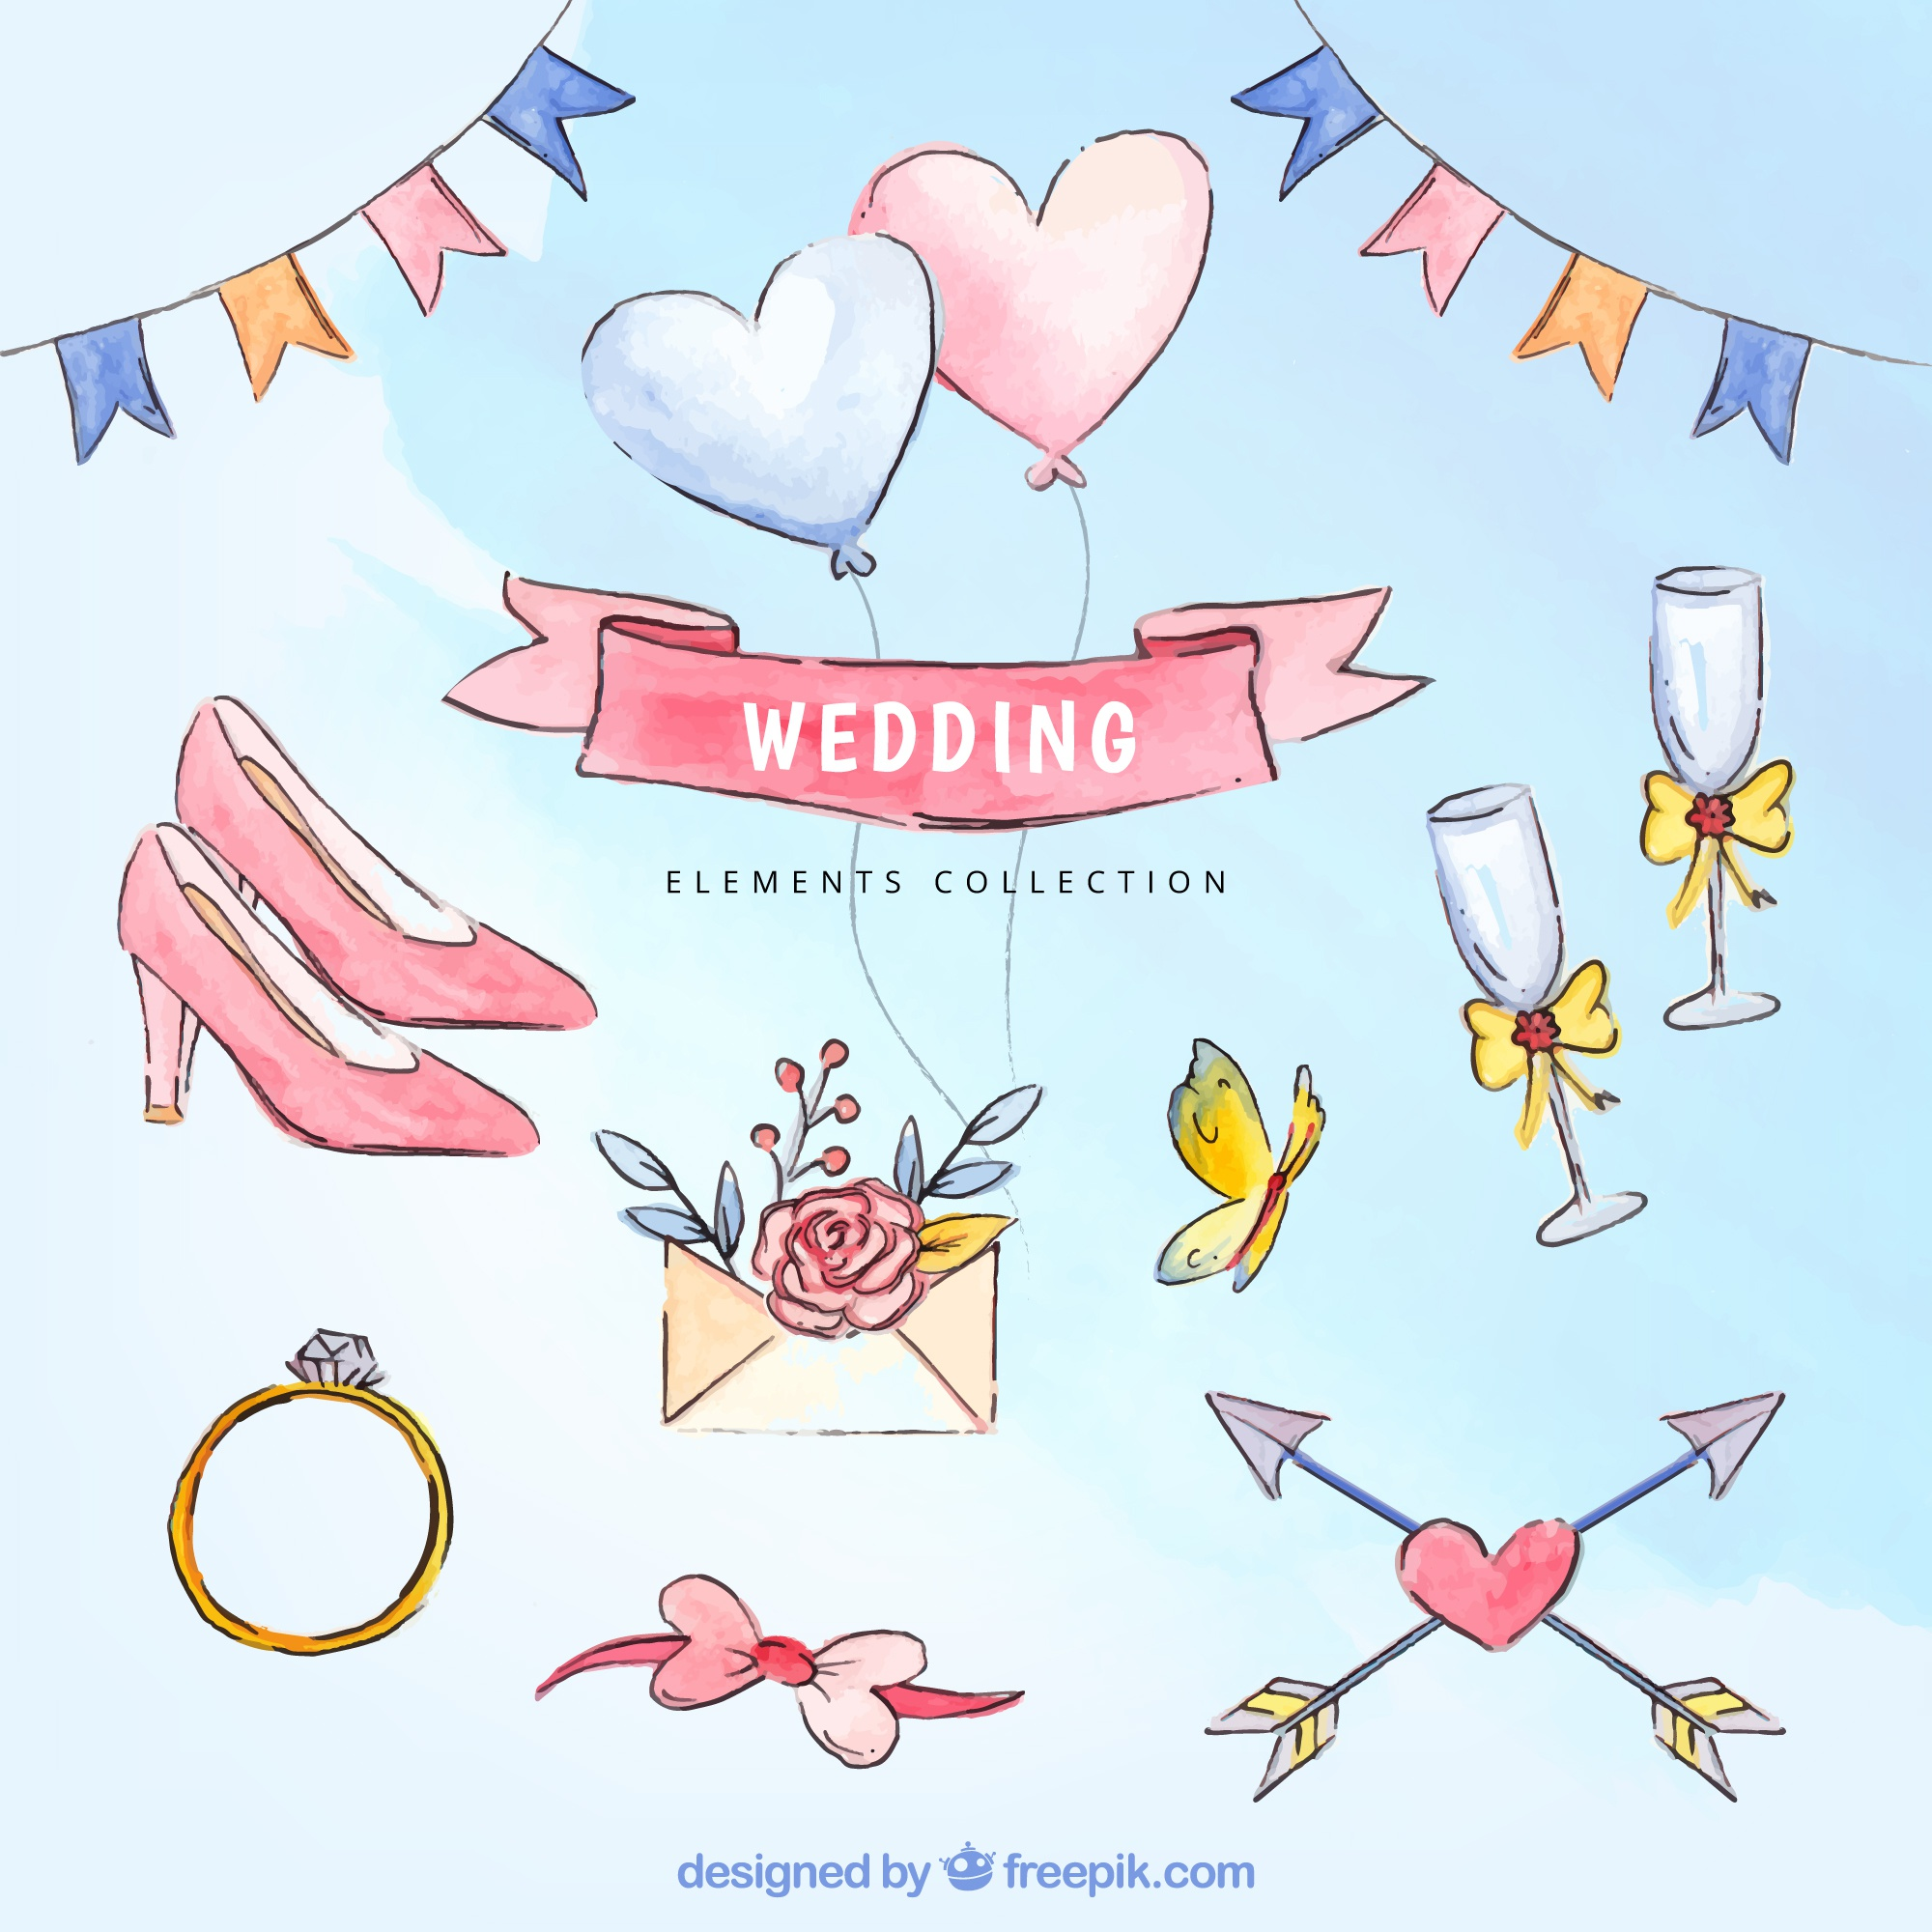 Assortment of great watercolor wedding elements